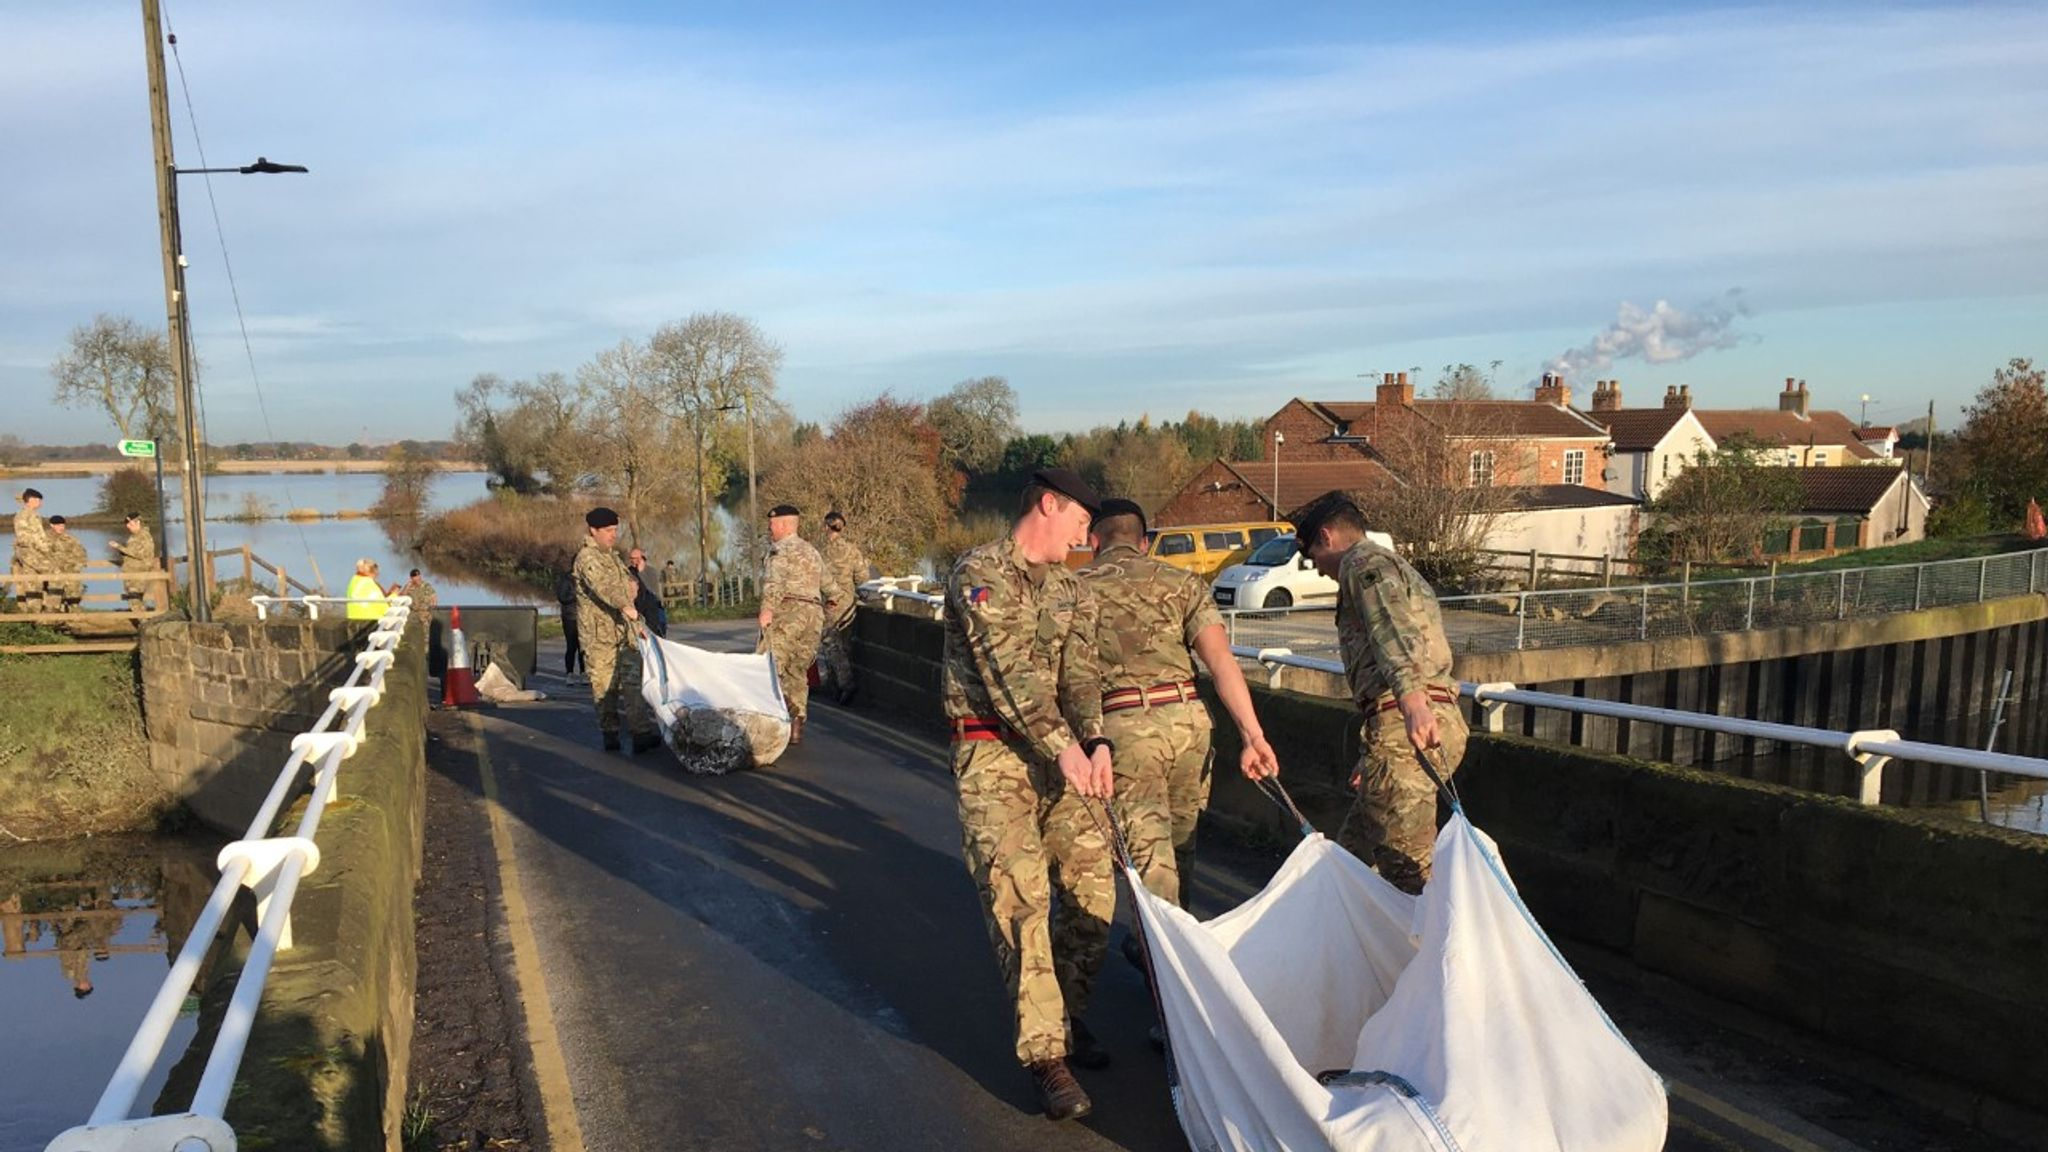 UK flooding: Army arrives in South Yorkshire as 35 warnings in place